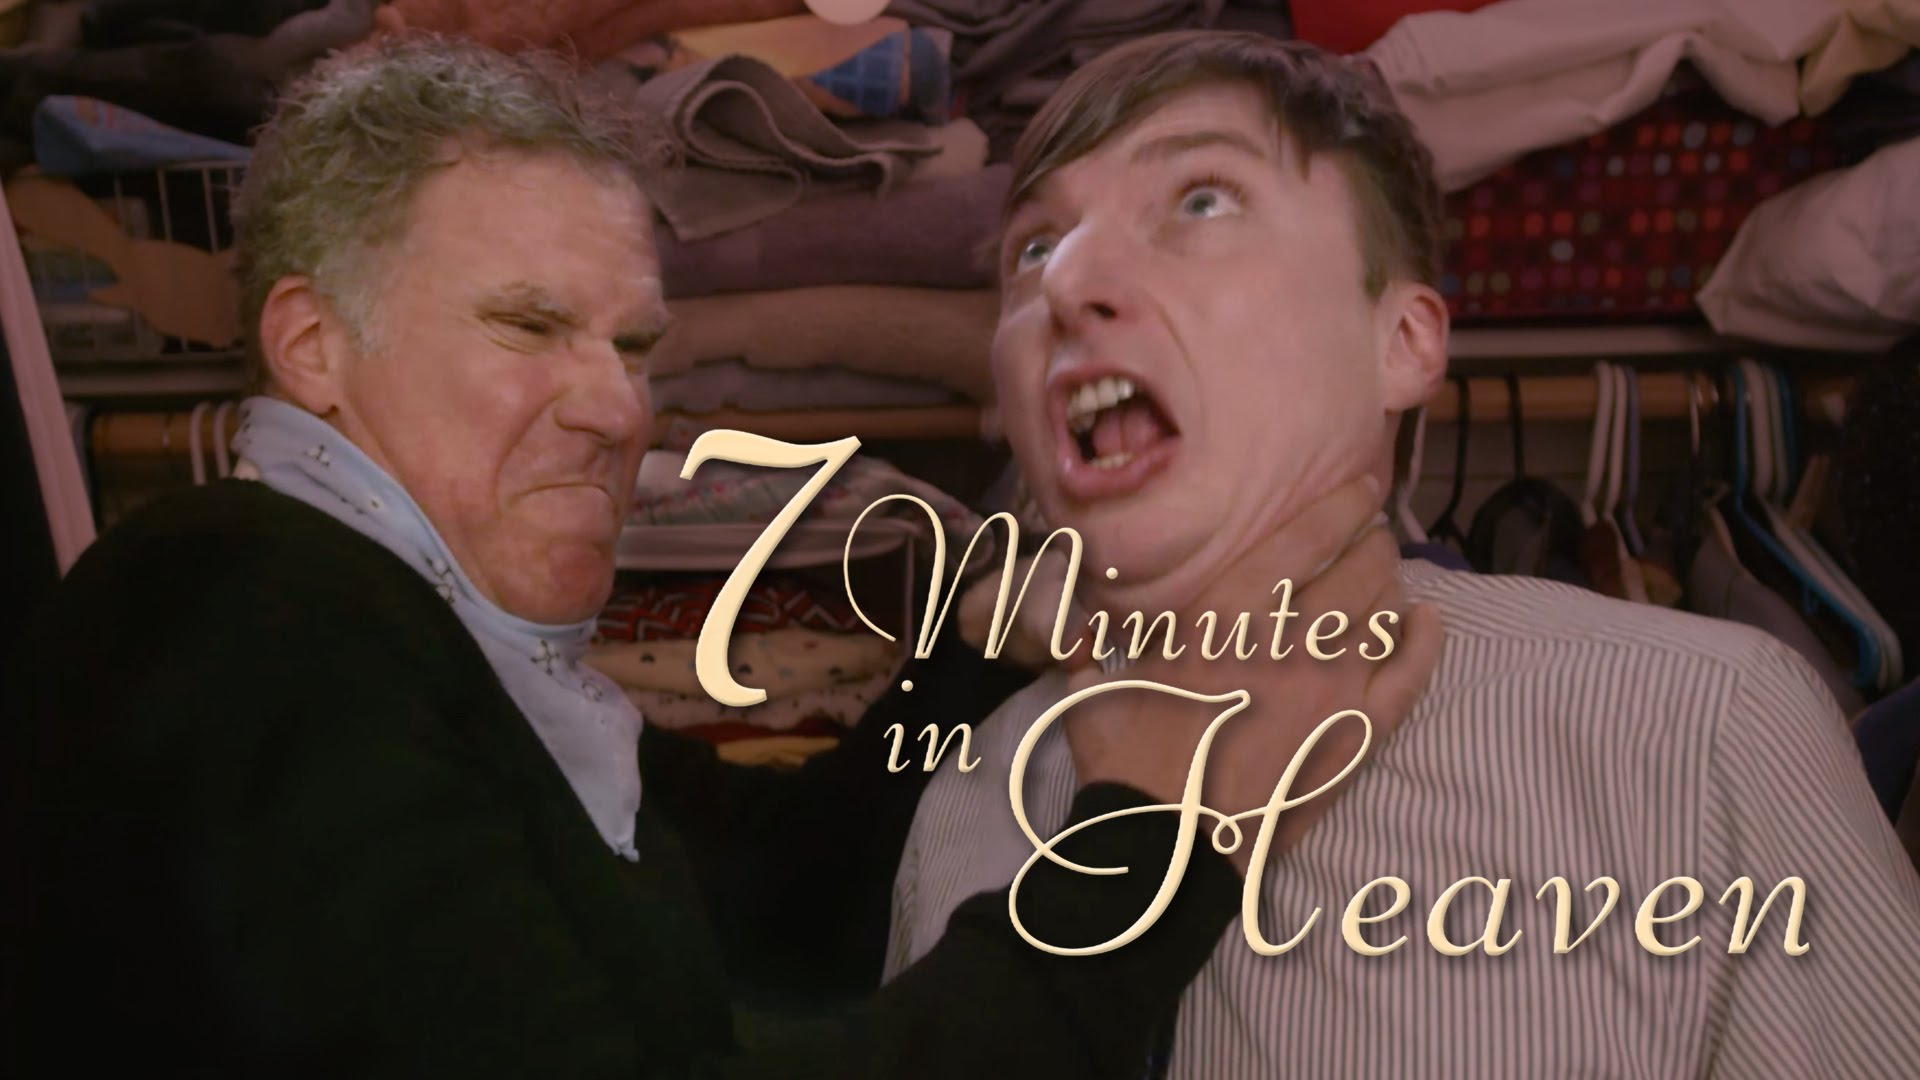 Will Ferrell Joins Mike OBrien In His Closet For Seven Minutes Heaven To Talk Improv Play Games